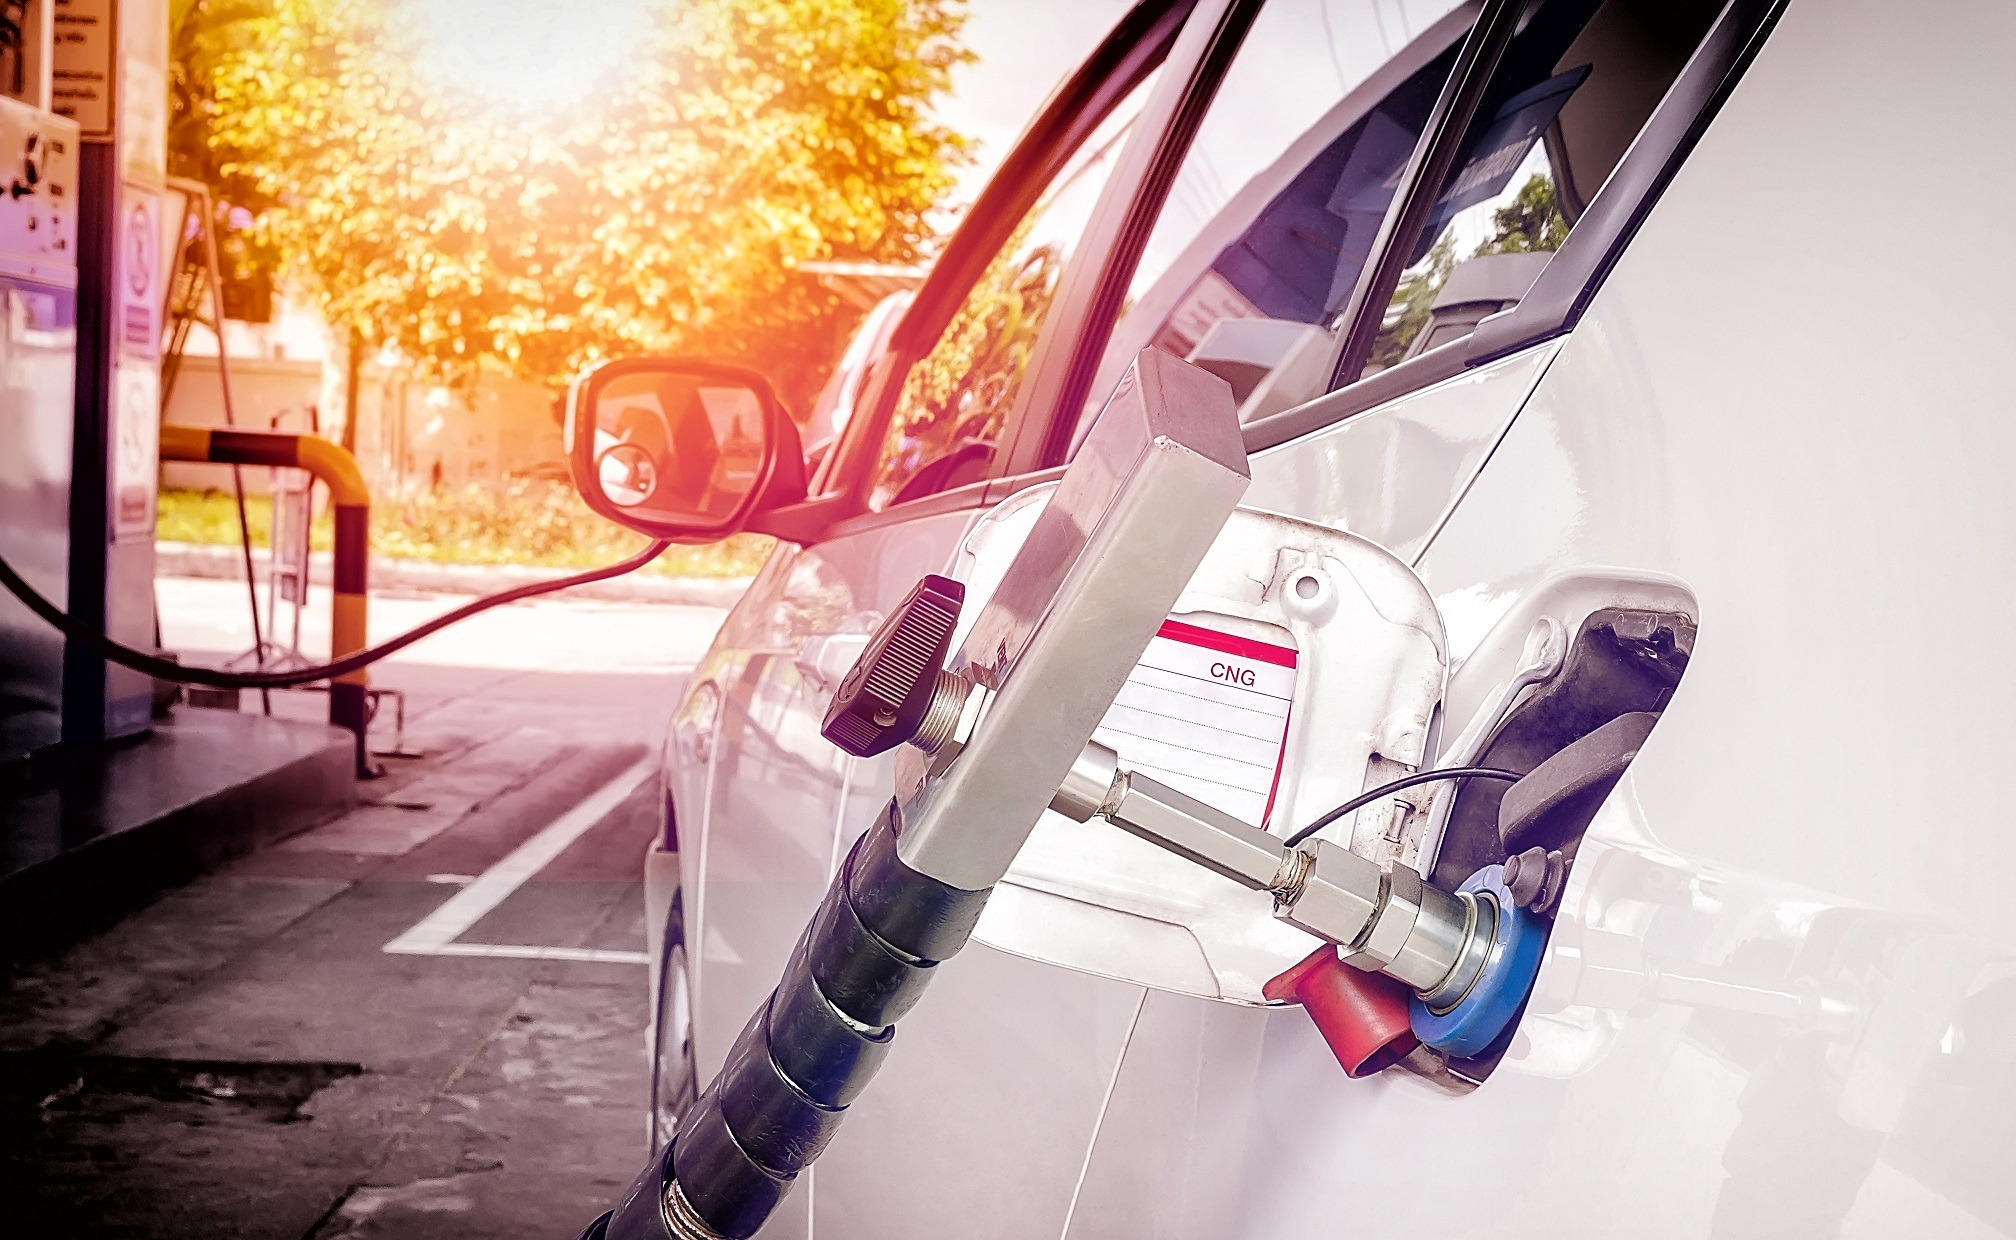 CNG Powered Vehicles an Alternative Fuel Saving Opportunity